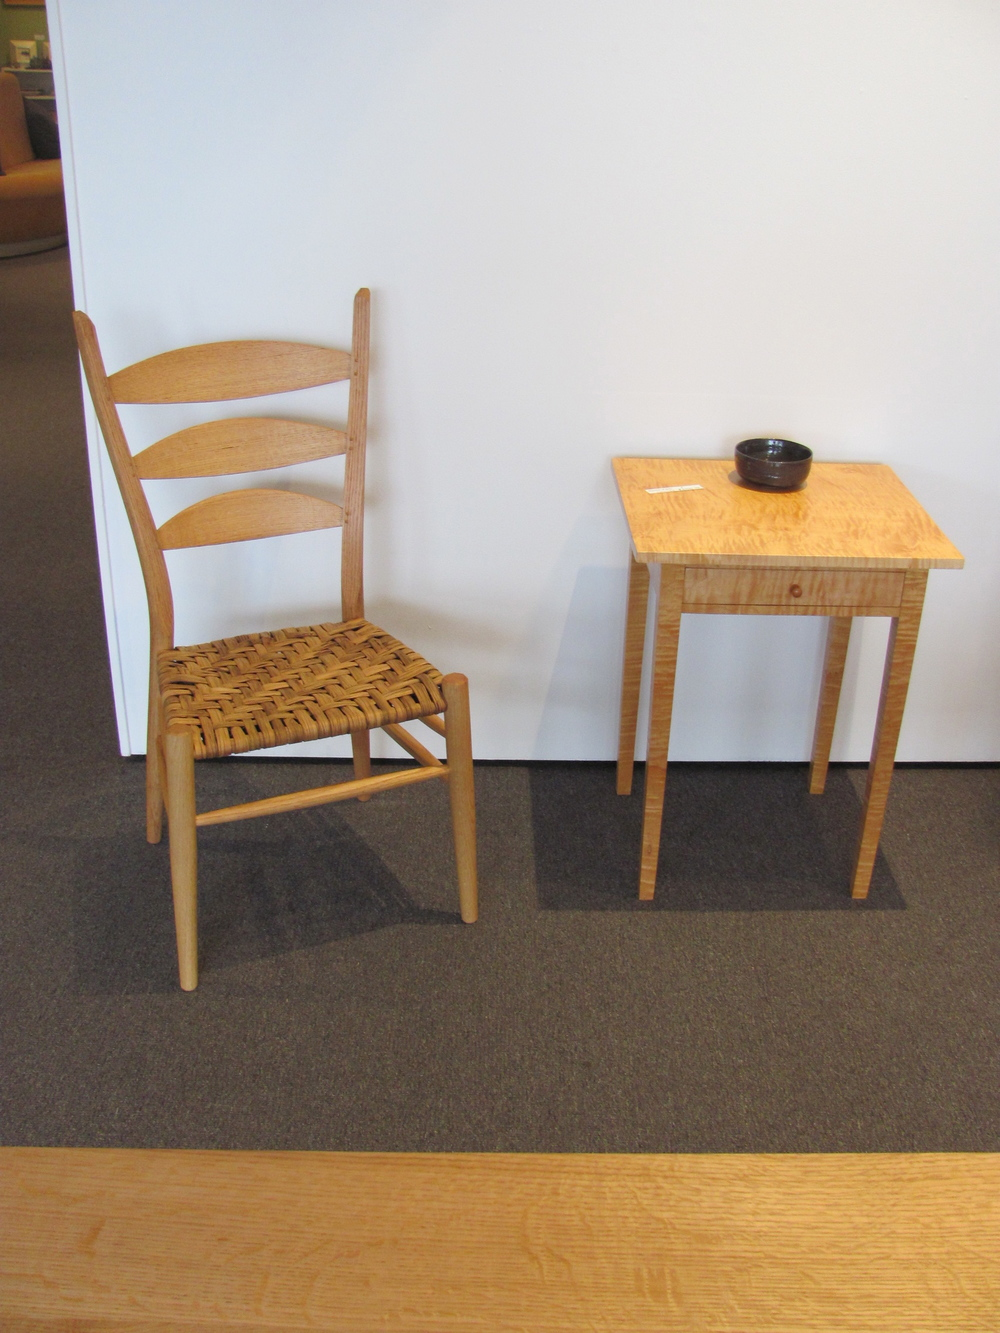 A Boggs' post and rung chair in red oak and a very curly maple Shaker end table (which sold at the exhibition). My daughter 16-year-old daughter Erika does pottery and had the opportunity to display some of her works.     Foreground is some of the stunning ray flake in the above red oak table.